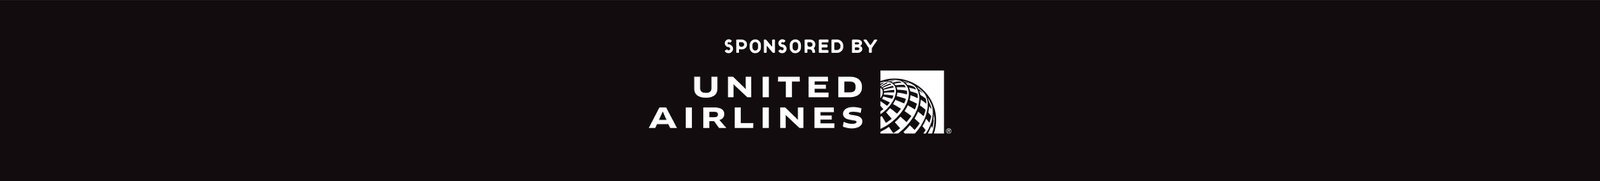 Winq Diversity Awards 2020 powered by United Airlines